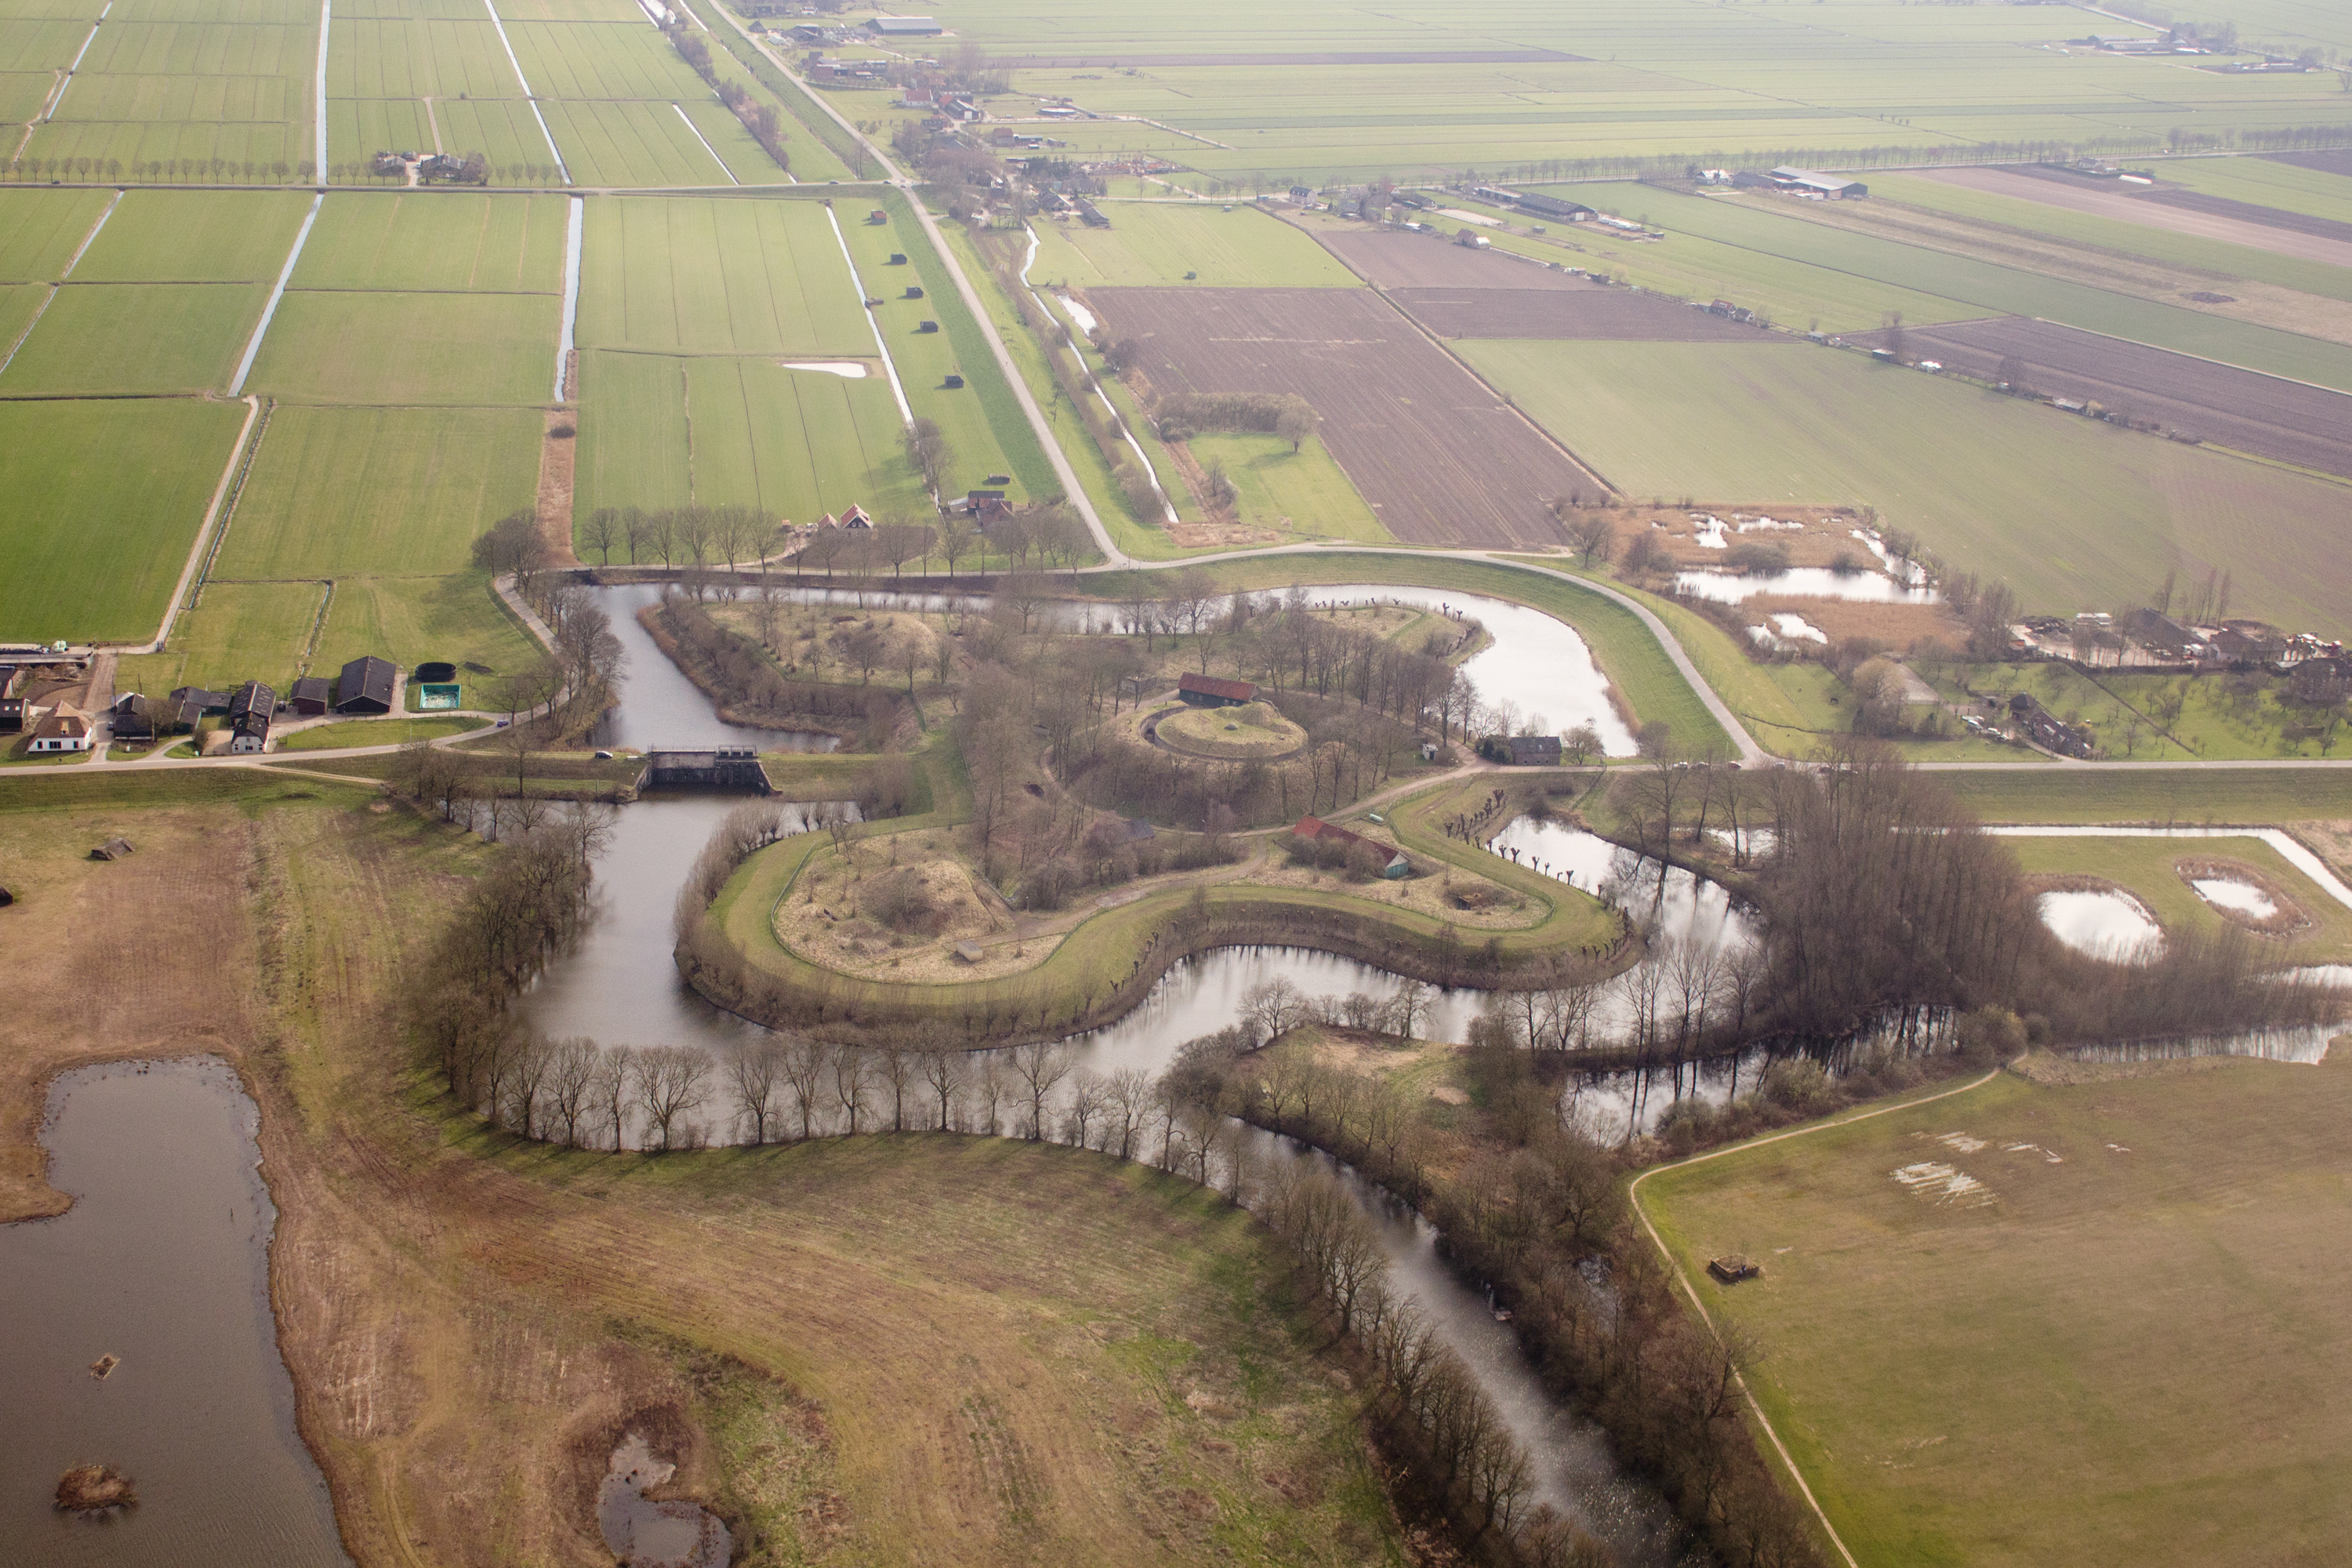 Activering Fort Everdingen tijdens Open Monumentendag